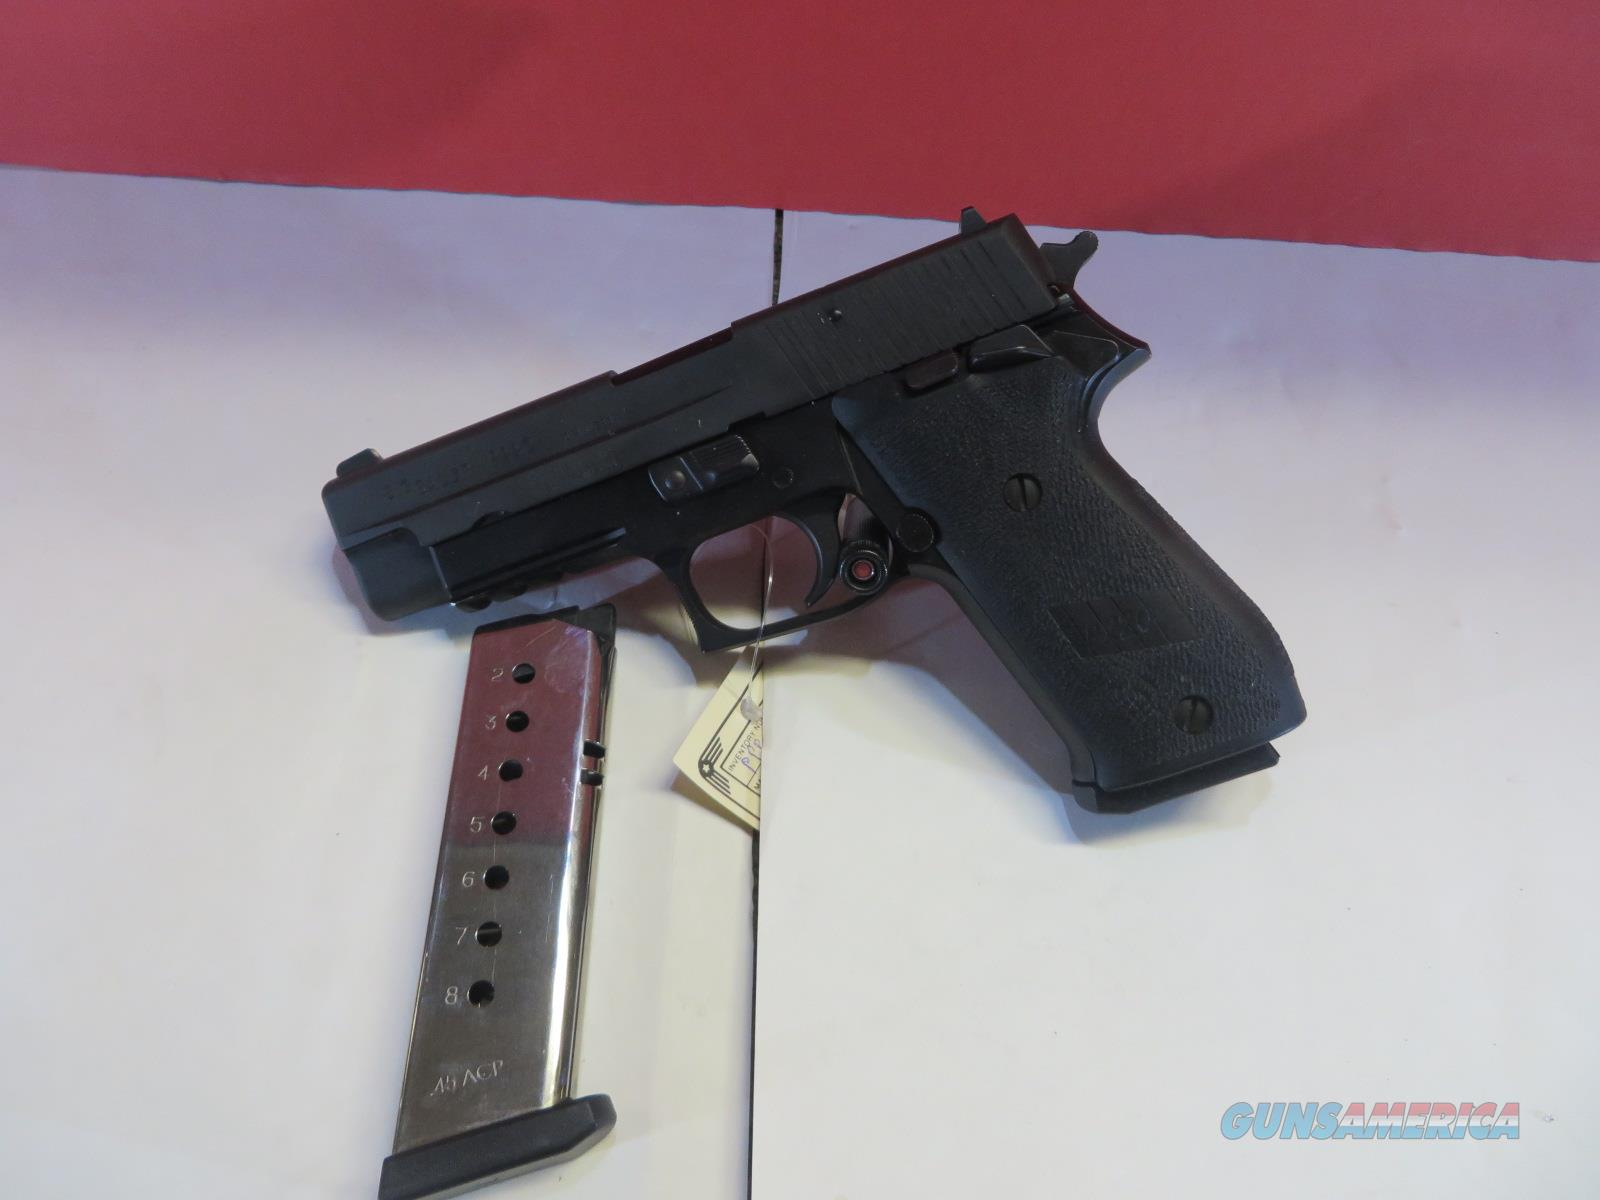 SIG SAUER P220 *MINT CONDITION* *2 EXTRA MAGAZINES*  Guns > Pistols > Sig - Sauer/Sigarms Pistols > P220